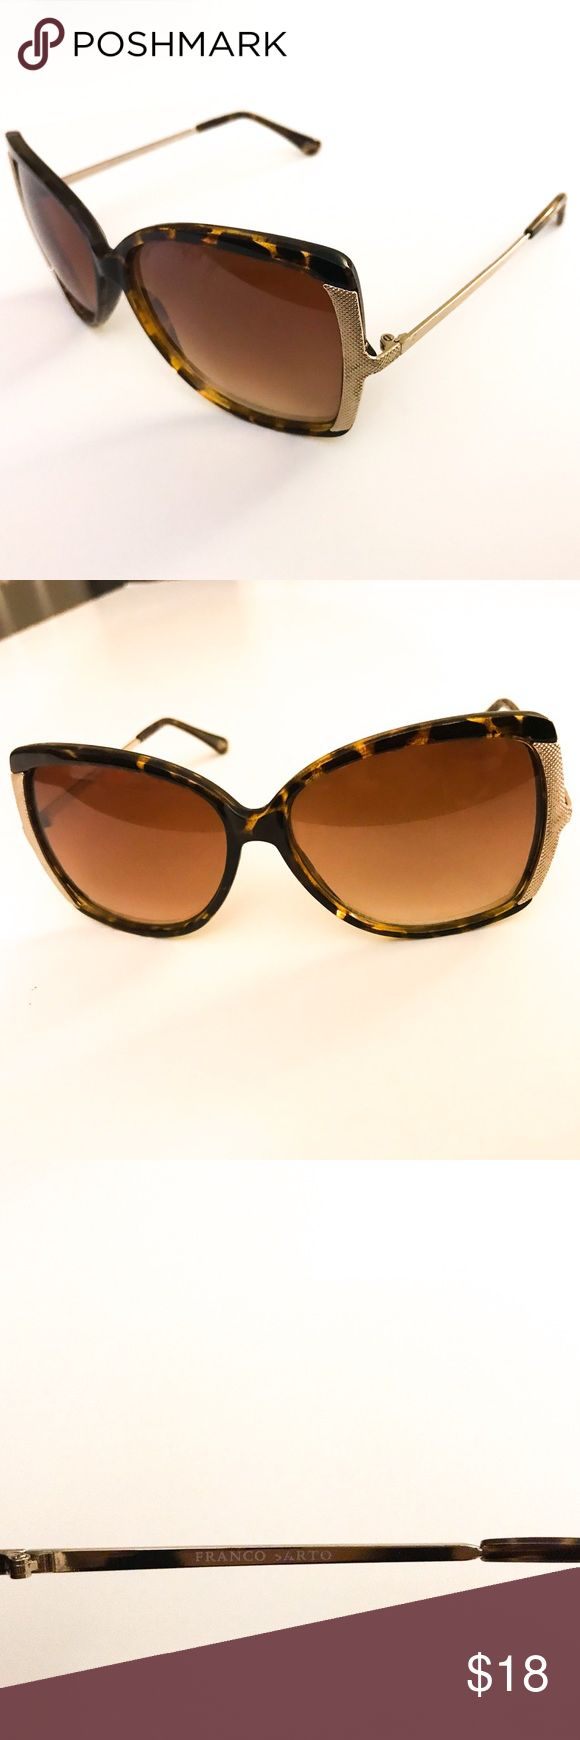 Franco Sarto Sunglasses Here are the details for these Franco Sarto Sunglasses : color brown tortoise, gold sides, very good condition, only worn a few times, Original price $30. Case not available. Bundle deal: buy 2 or more items from my closet & save 15% Franco Sarto Accessories Sunglasses